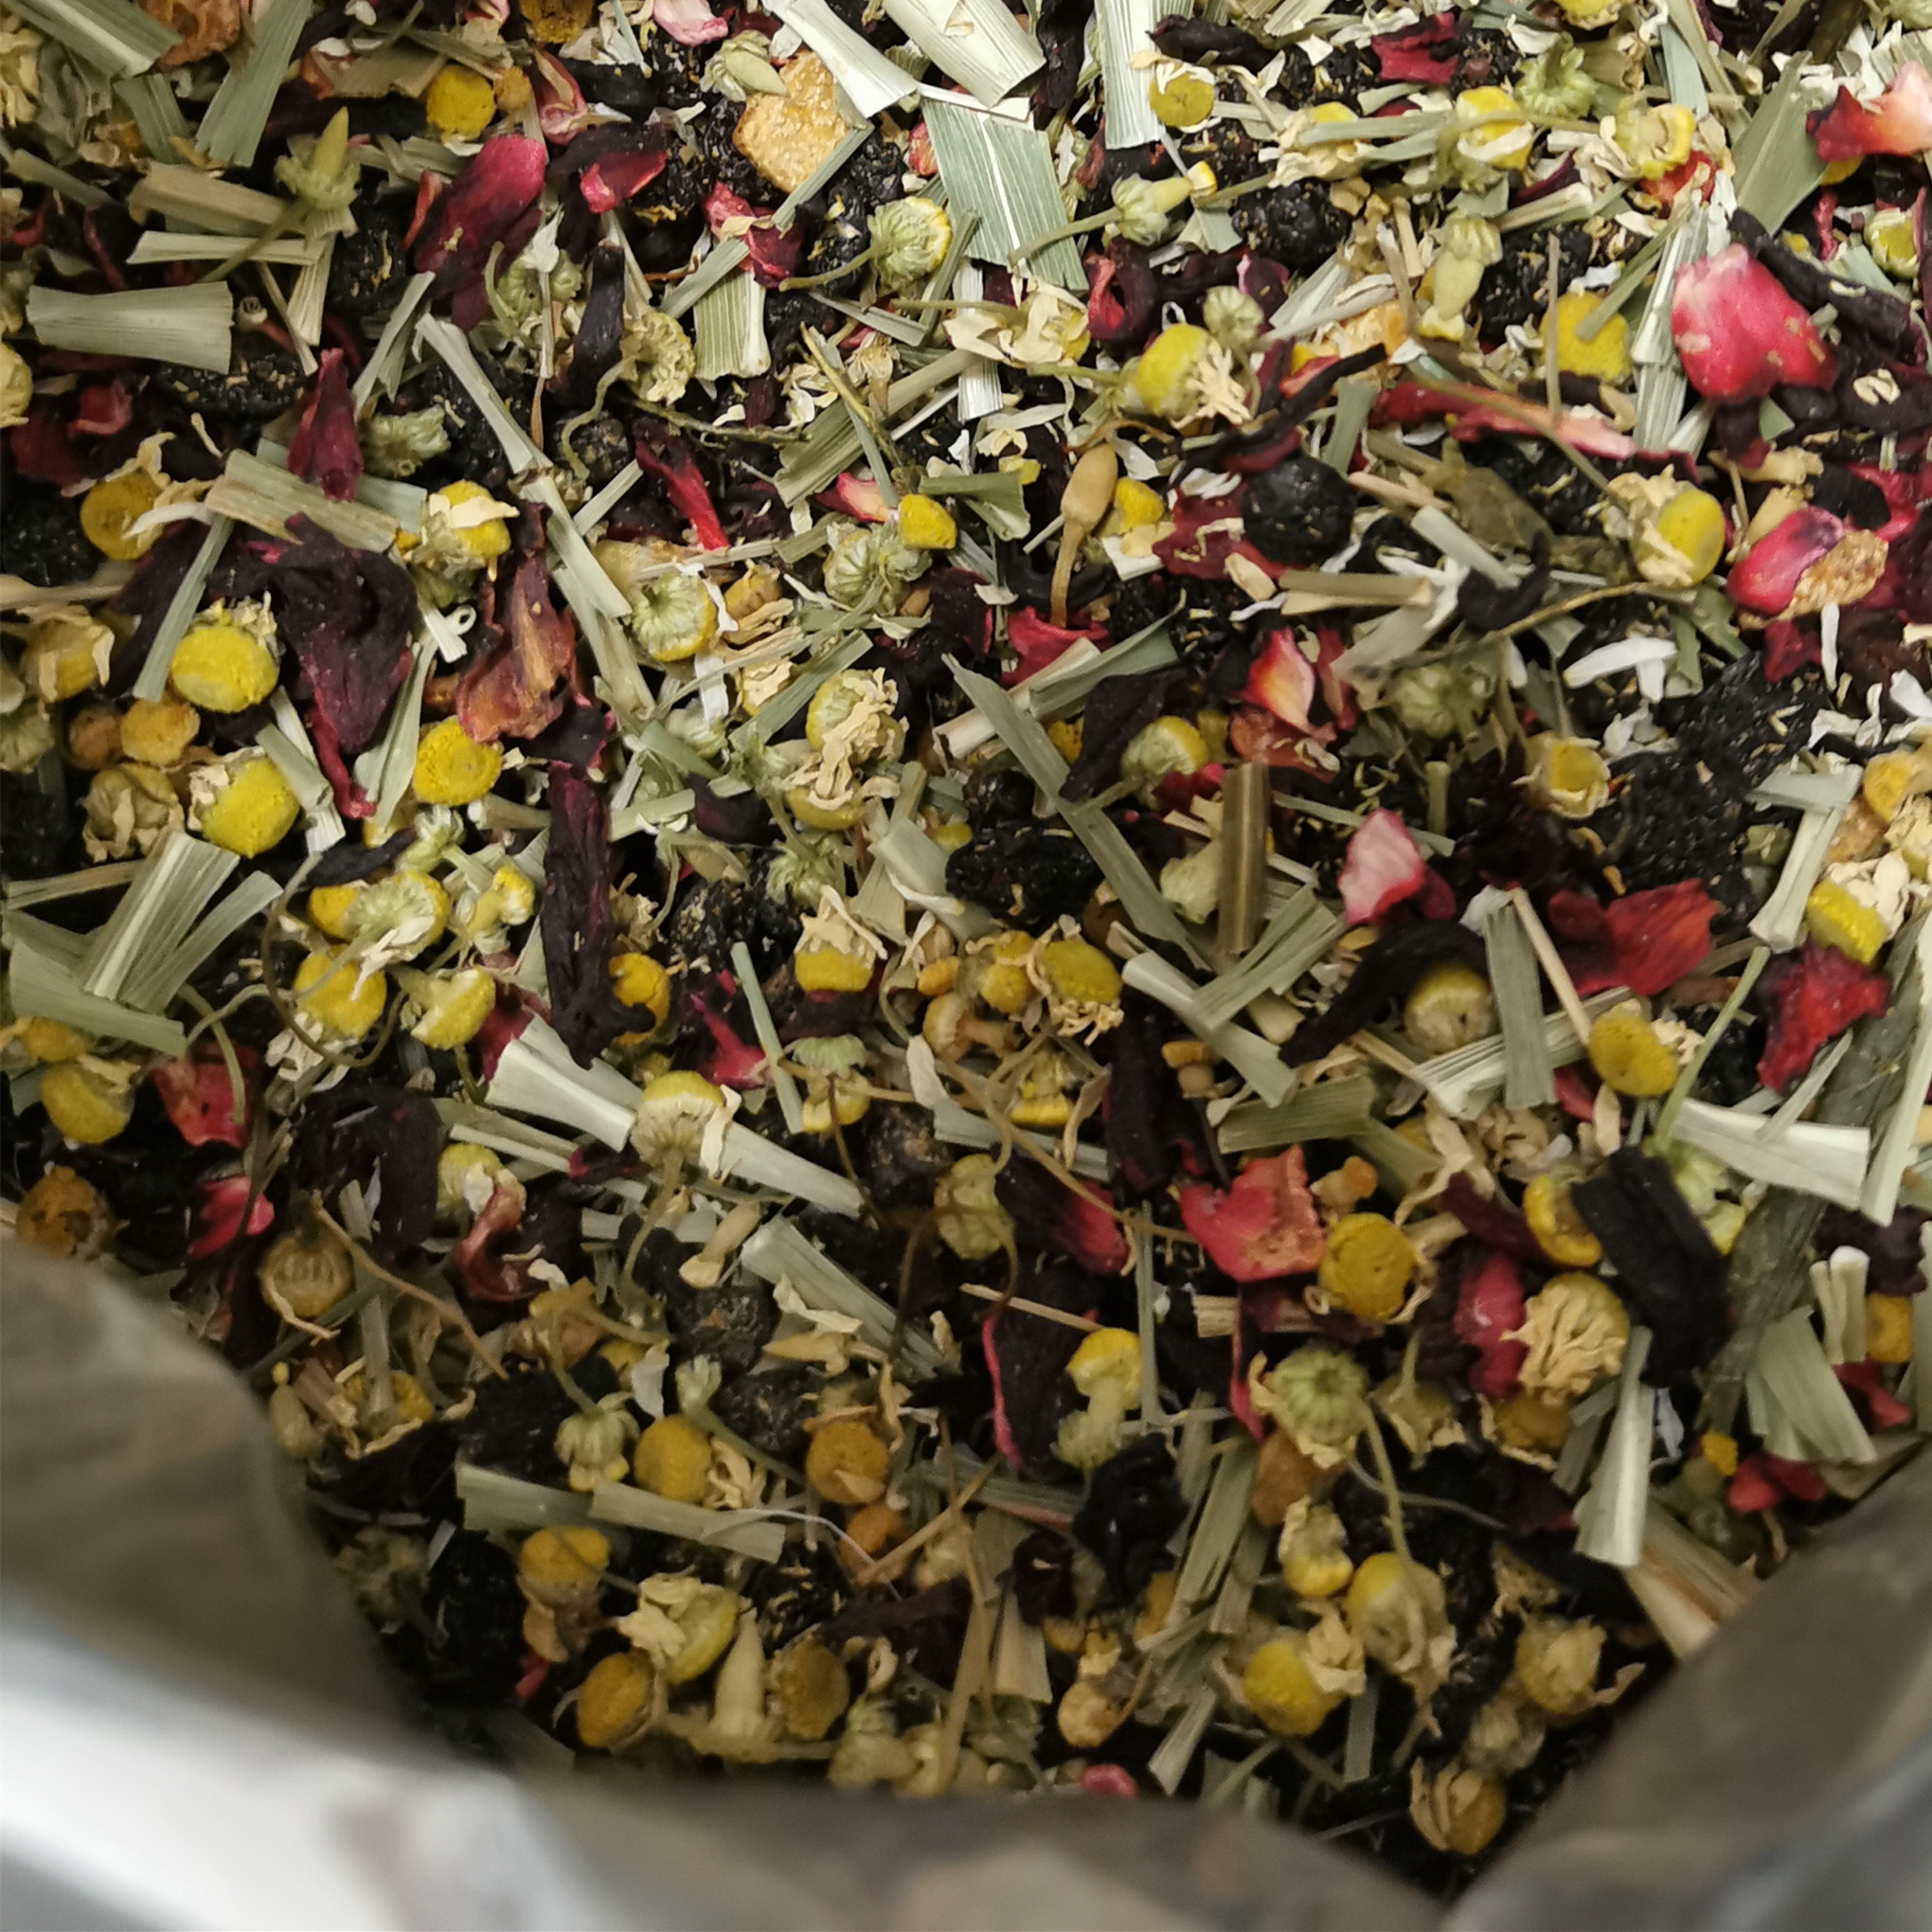 Loose Flavoured Tea Blending Tea with Herbal Blends and Fruit Tea Blend - 4uTea | 4uTea.com